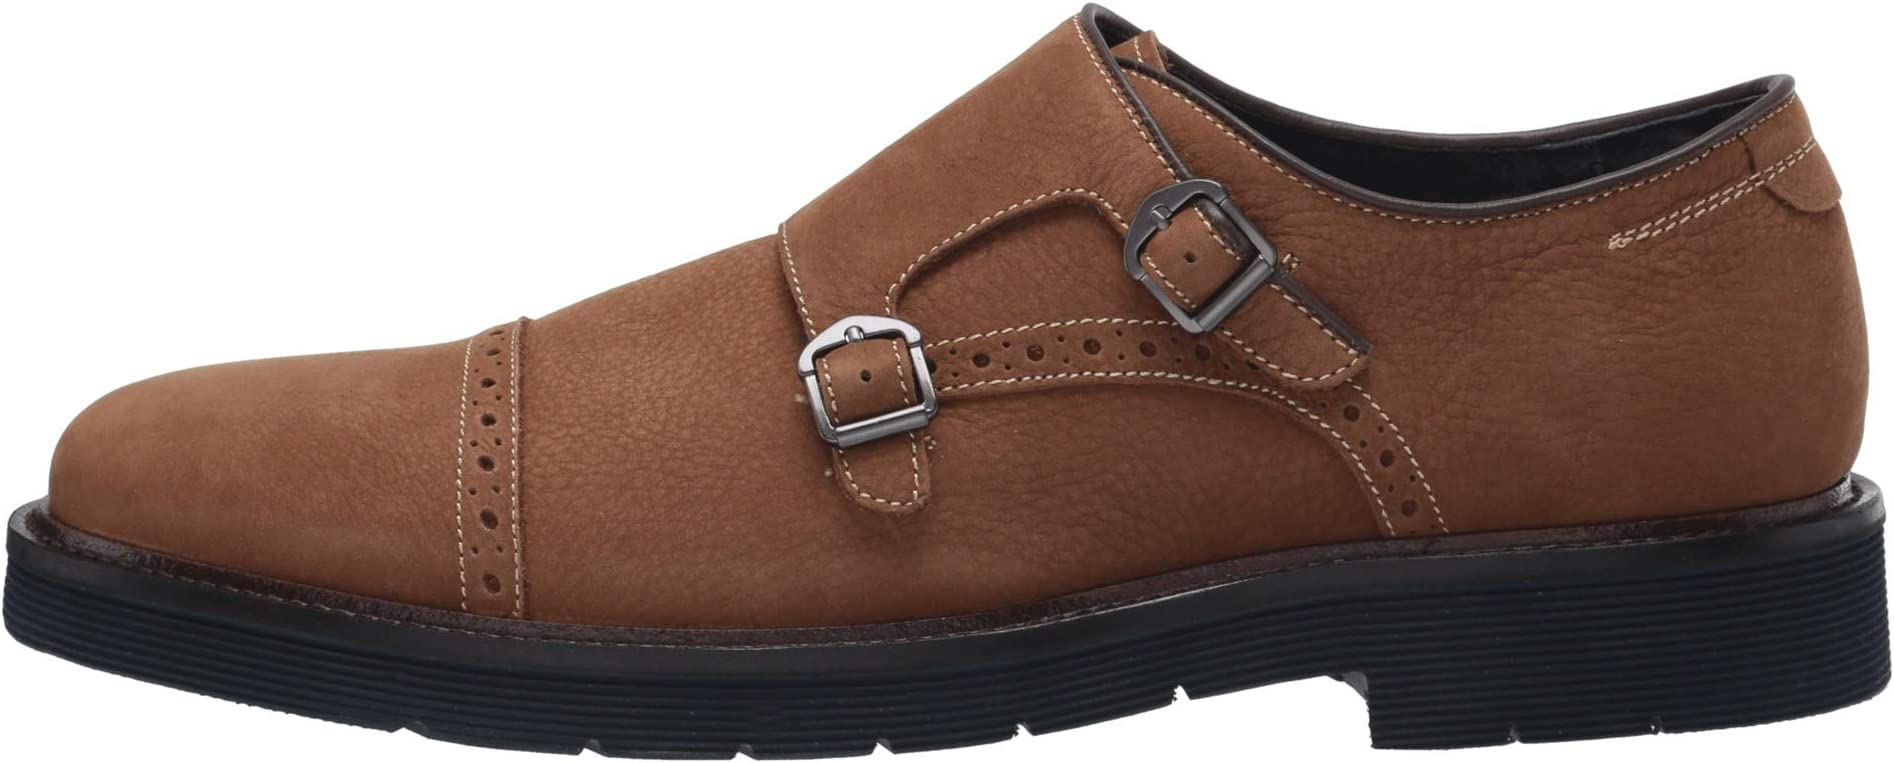 J&M EST. 1850 Kinley Monk | Men's shoes | 2020 Newest